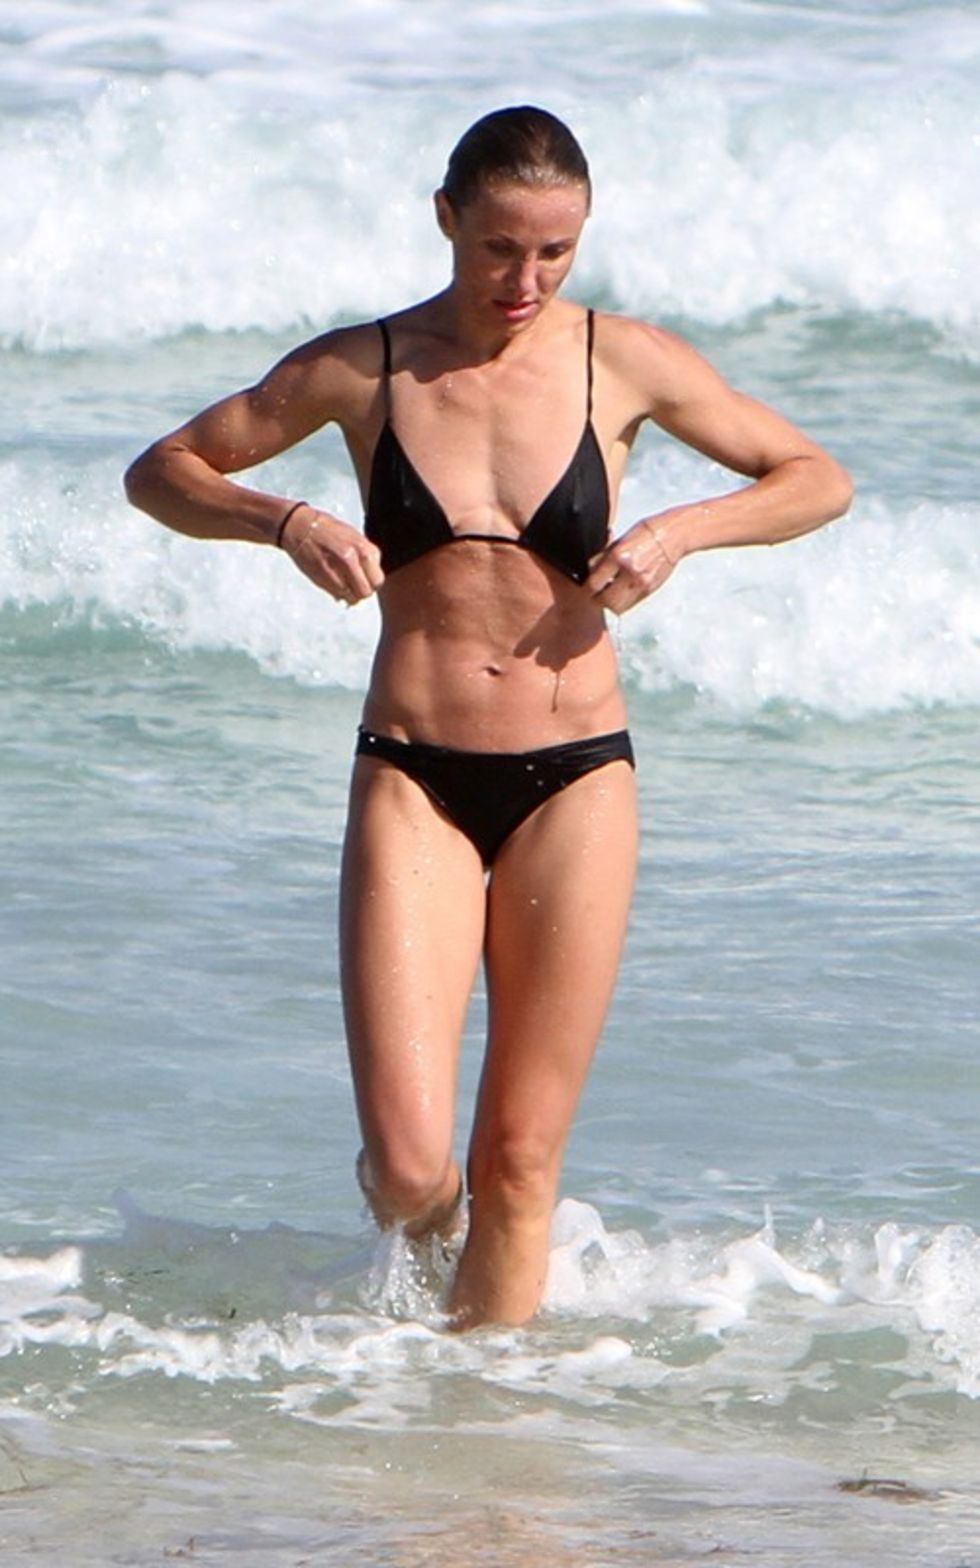 cameron-diaz-and-alex-rodriguez-on-the-beach-in-miami-06